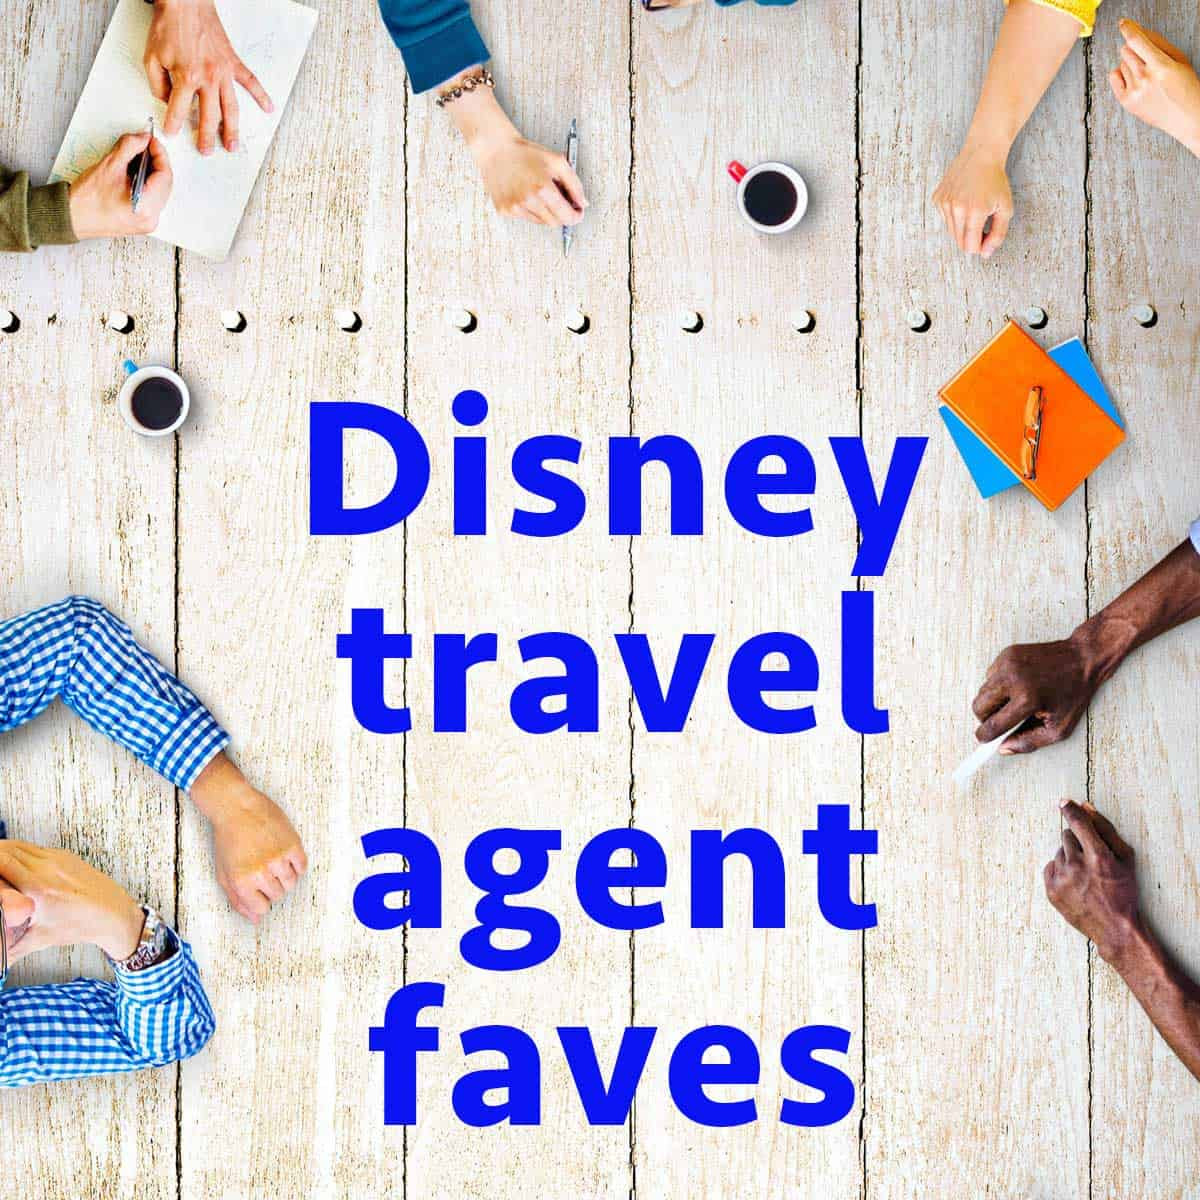 Disney travel agent faves  PREP142